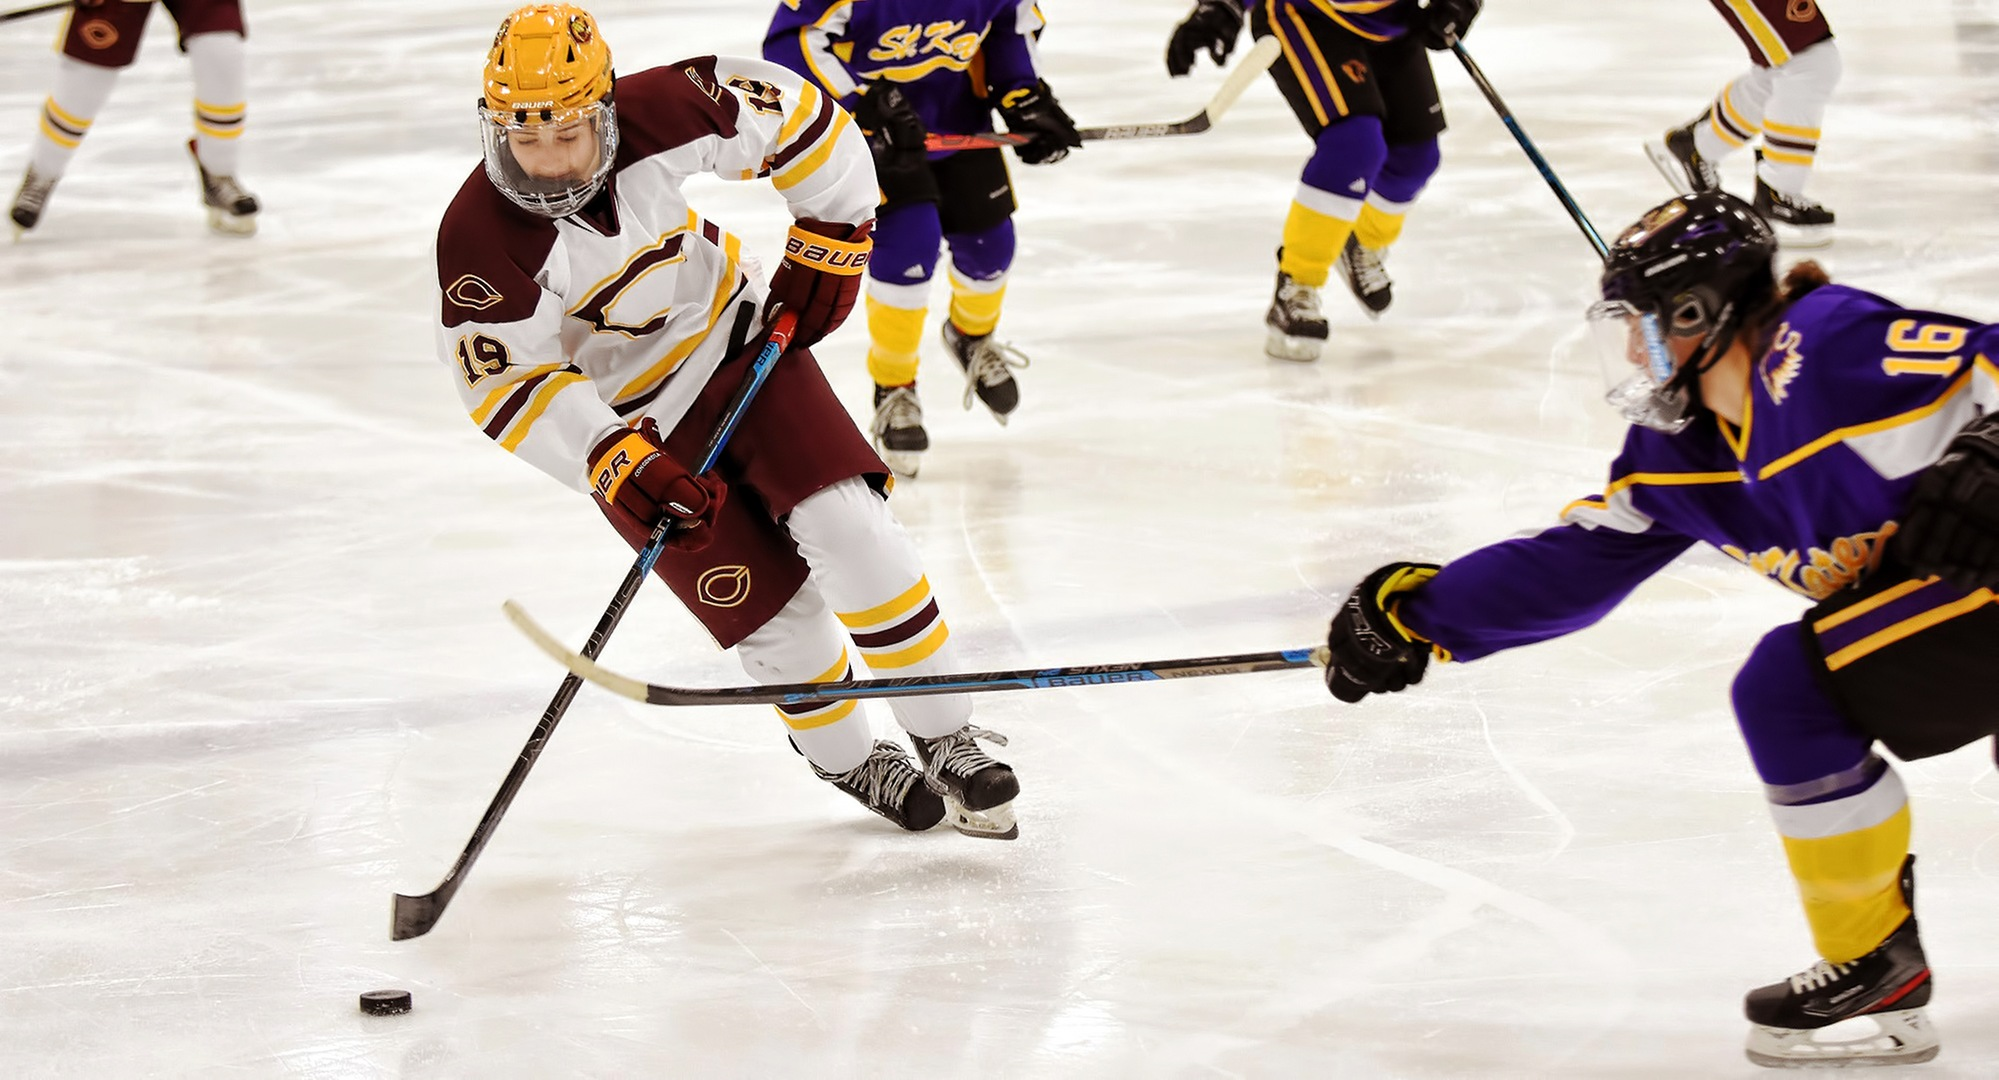 Freshman Kenley Anderson rushes the puck up the ice in the second period of the Cobbers' game with St. Kate's. Anderson scored her first collegiate goal in the win.